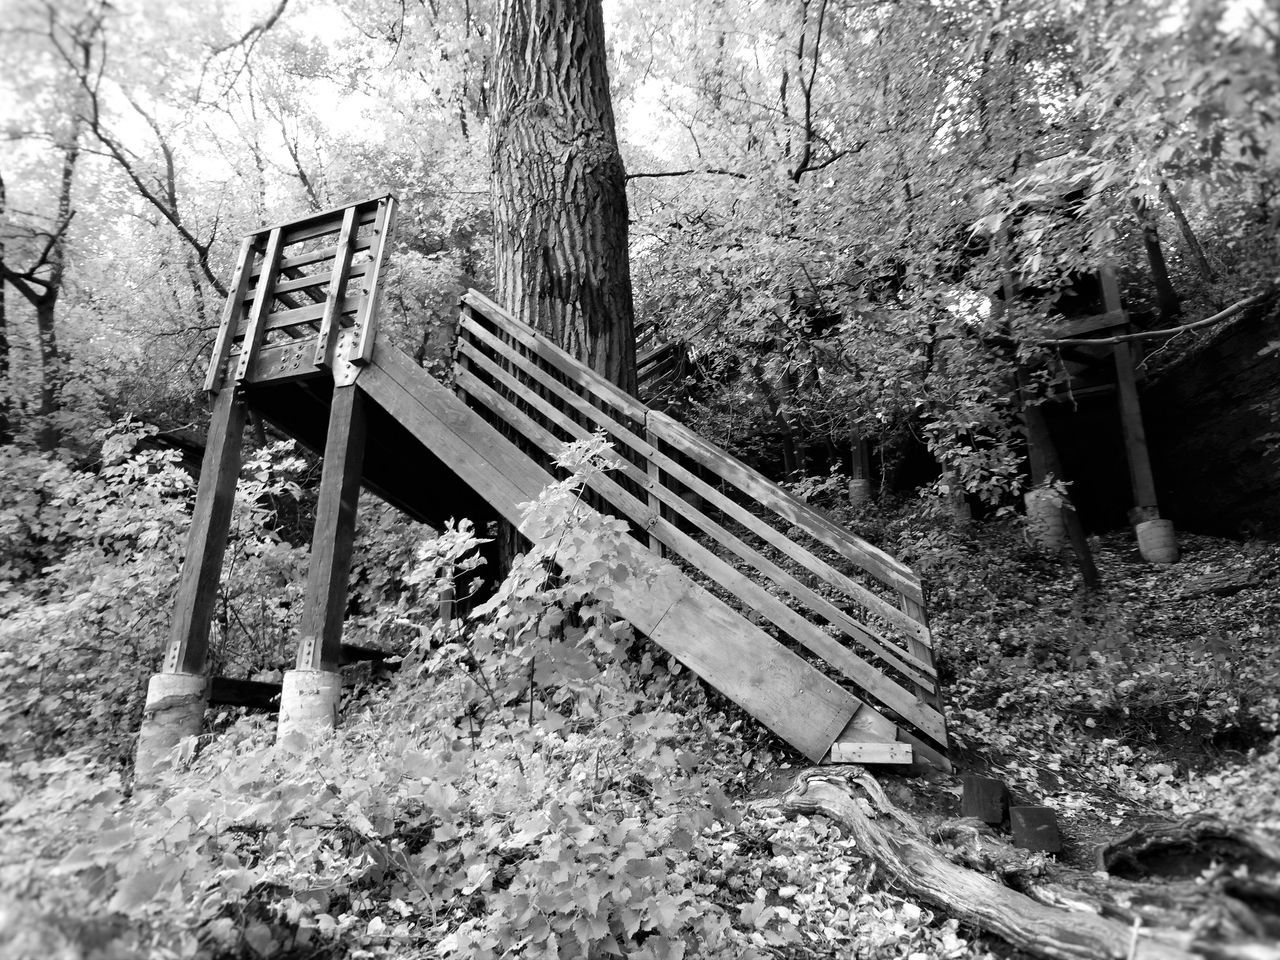 St. Anthony Main trails in Minneapolis MN Black & White Black And White Black And White Collection  Black And White Photography Black And White Portrait Day Fall Nature No People Outdoors Tabphotography Tree Wood Wood - Material